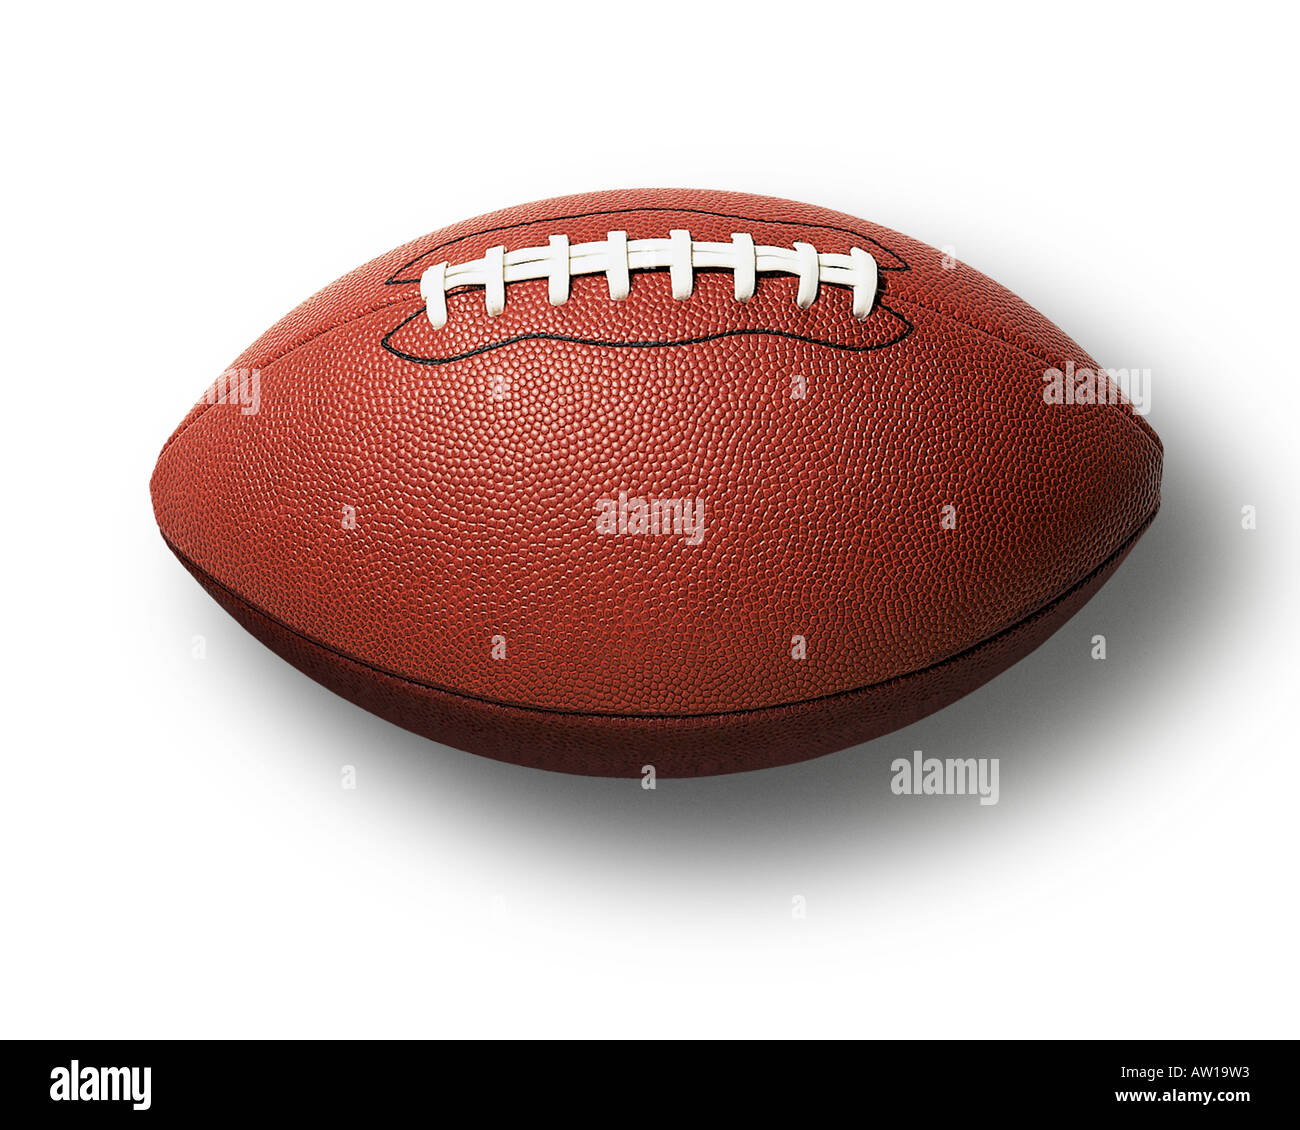 American Football on White with Drop Shadow Stock Photo